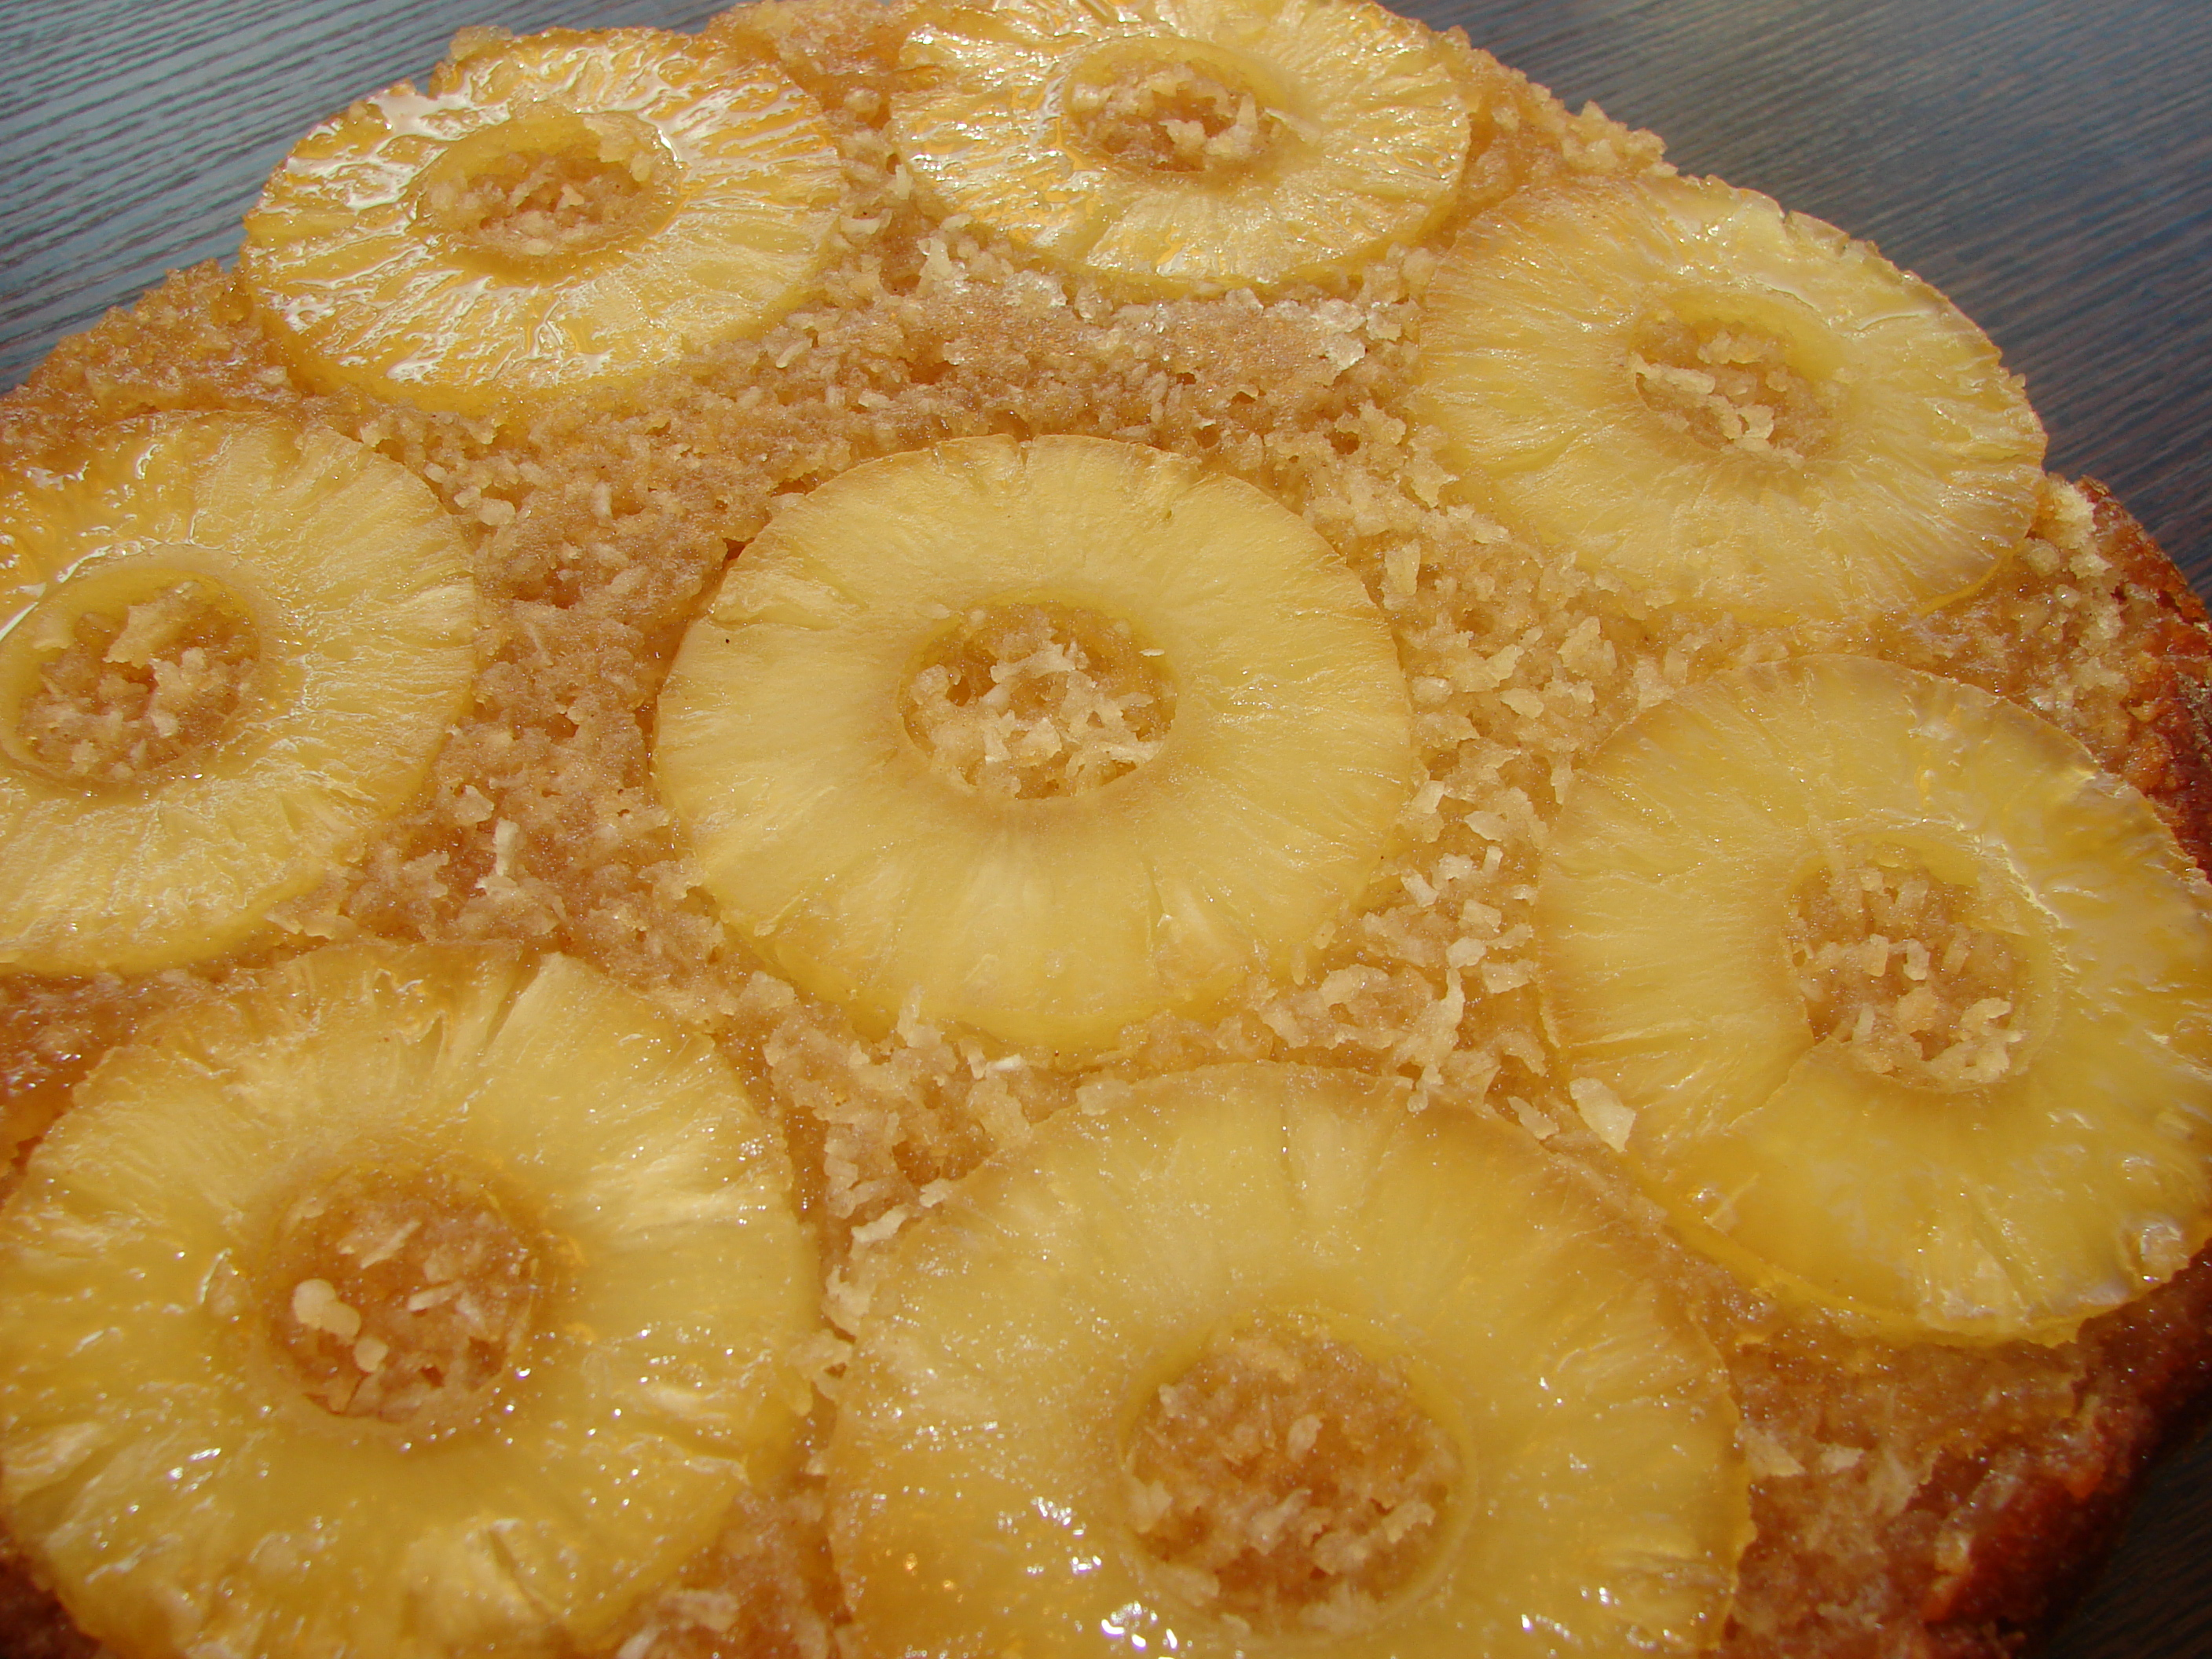 Coconut Milk Pineapple Upside Down Cake